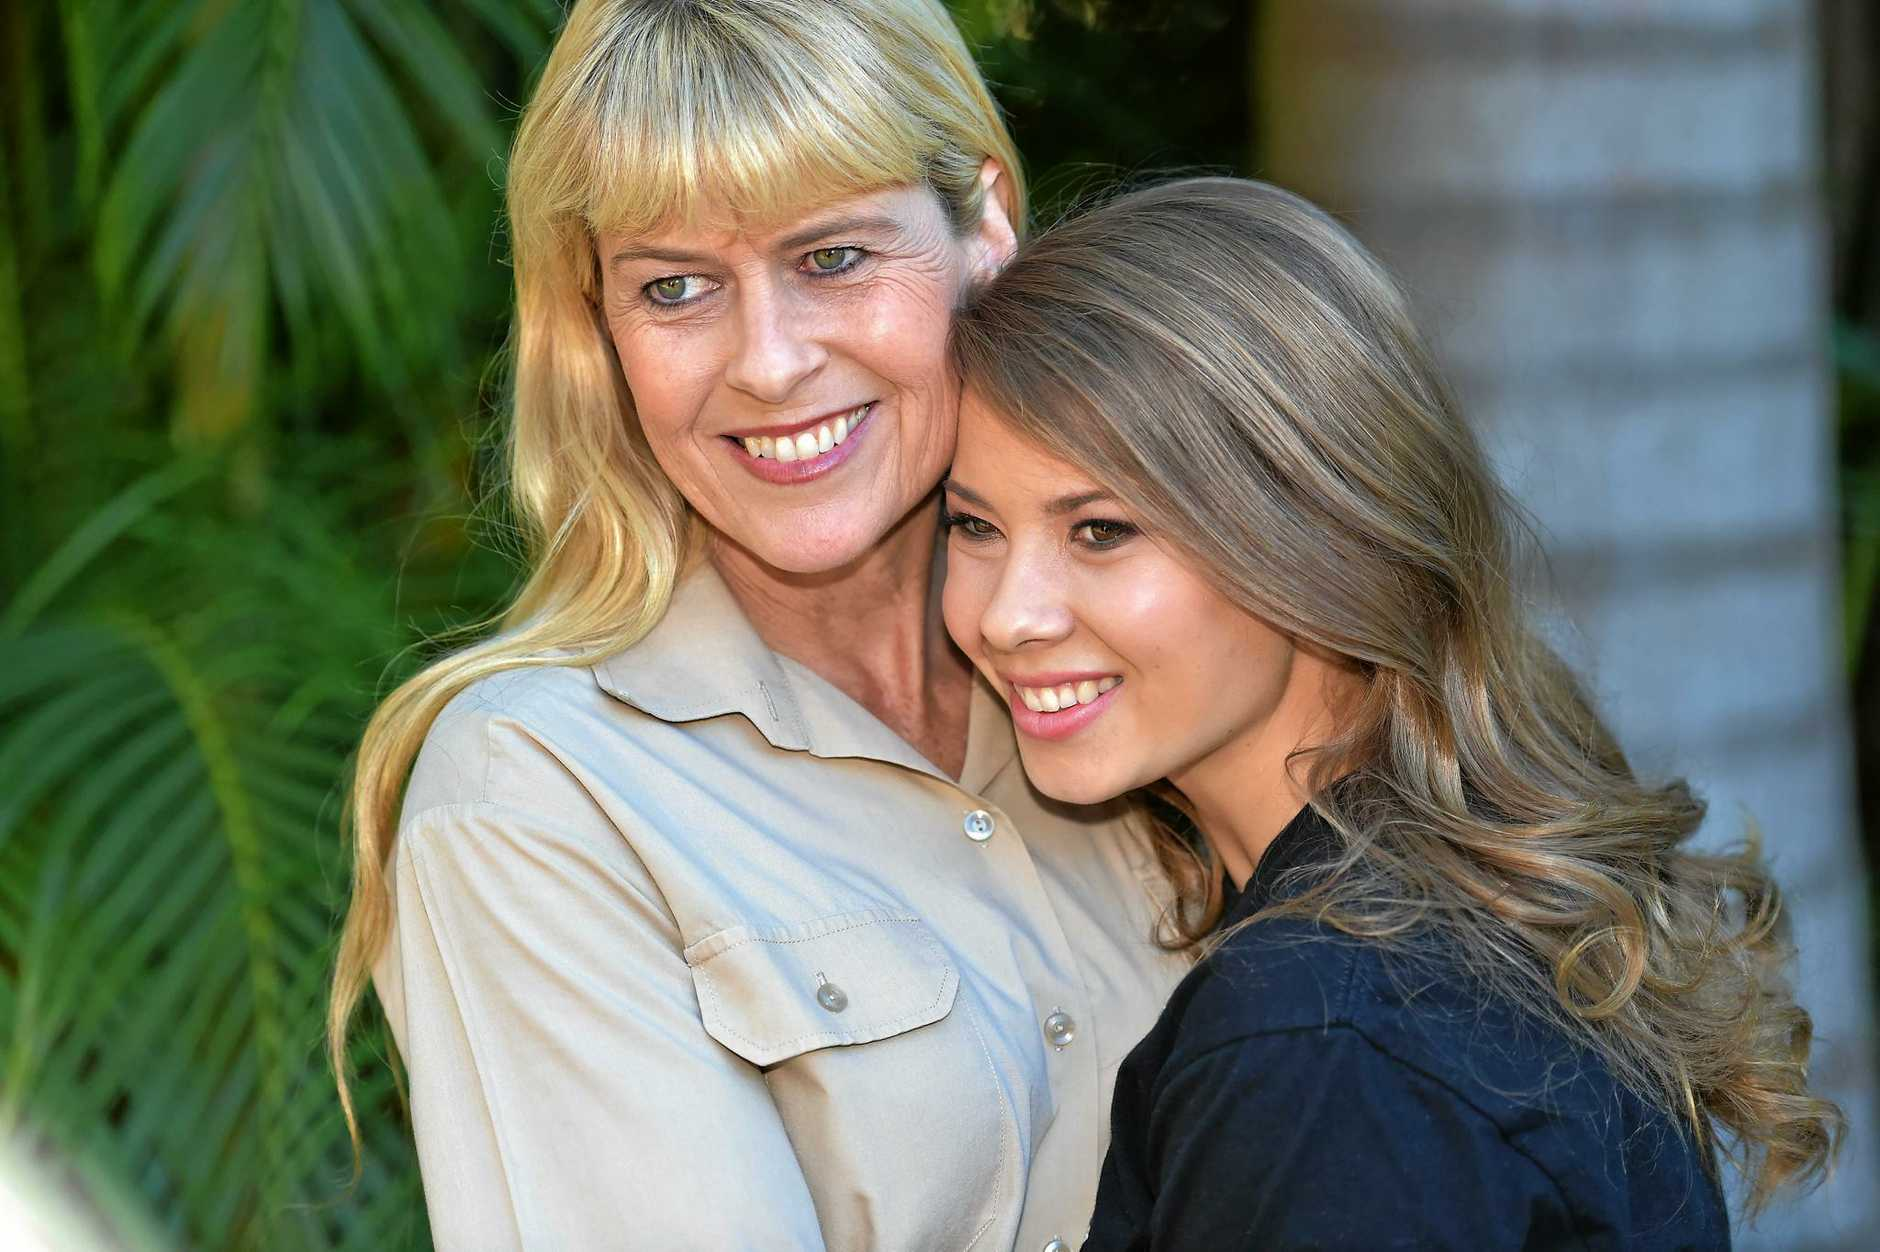 Bindi Irwin celebrates her 18th birthday with family, friends and animals at Australia Zoo.Bindi gets a hug from her mum Terri.